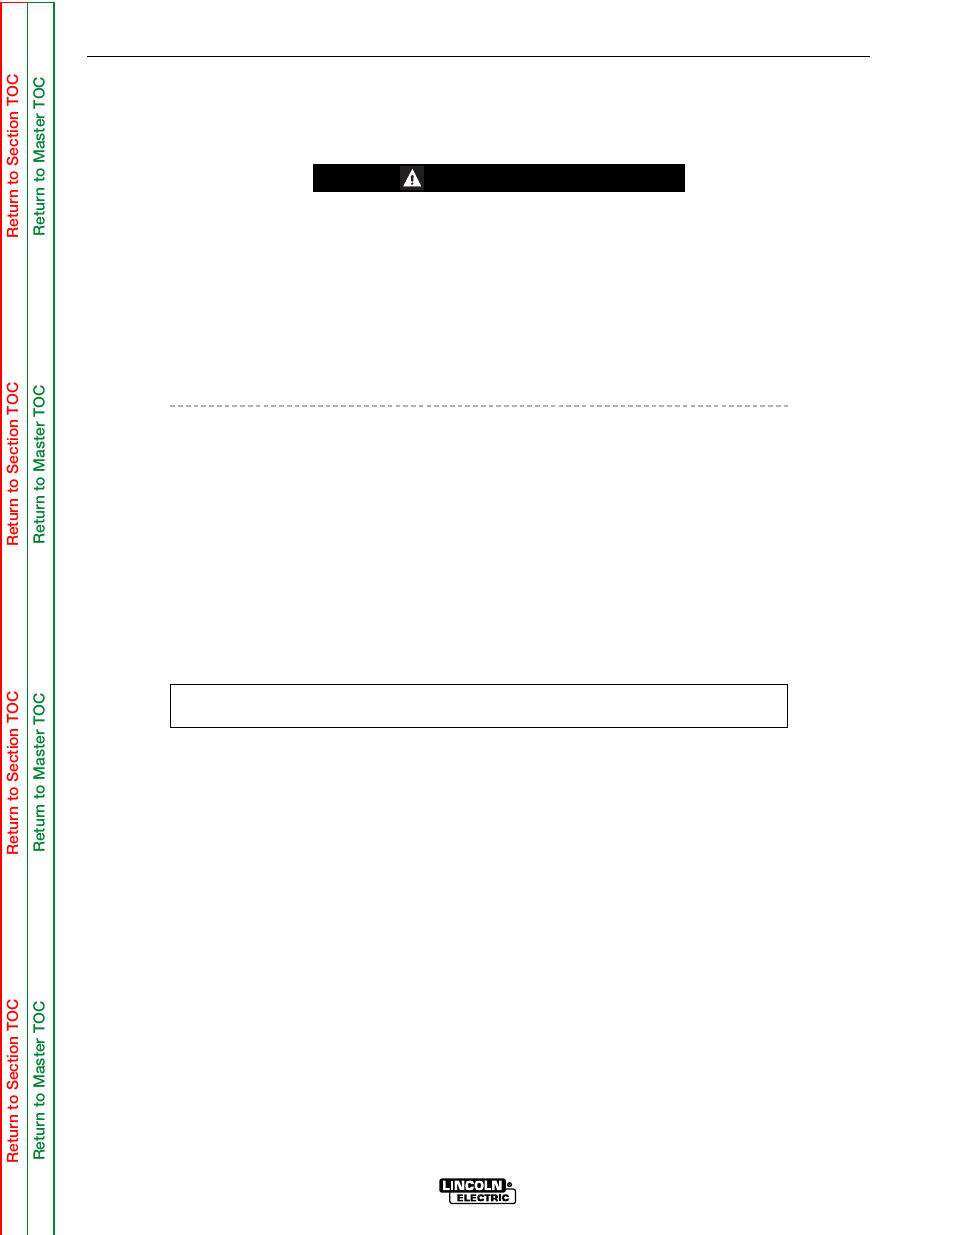 hight resolution of idler solenoid test troubleshooting repair lincoln electric commander svm145 b user manual page 77 175